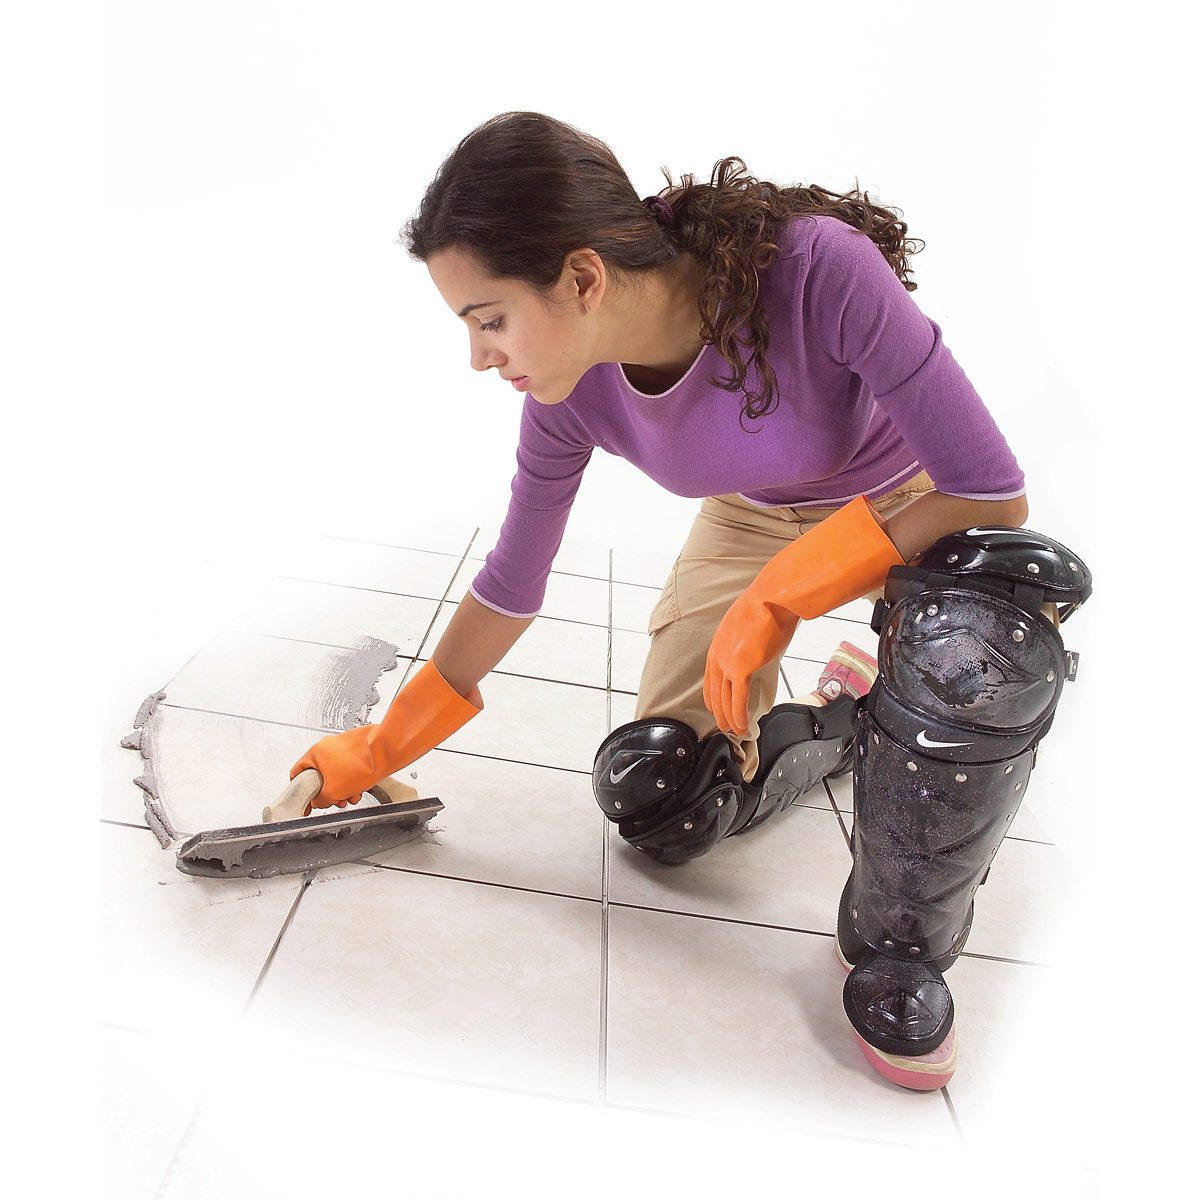 no-slide knee pads — tip from the family handyman